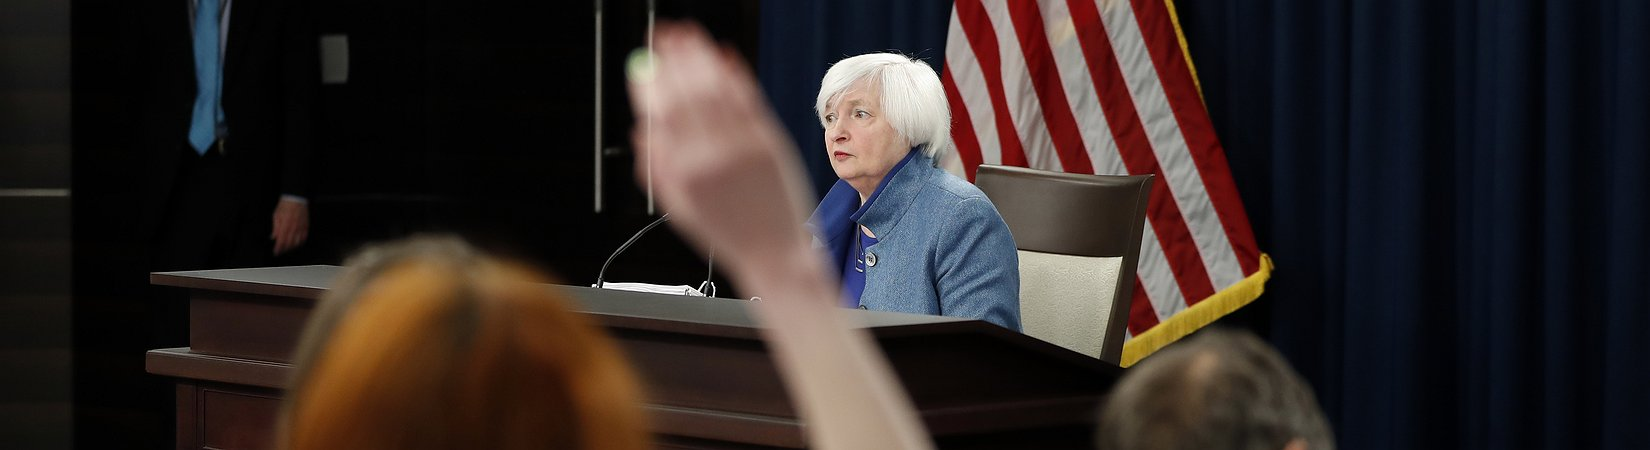 Stocks fall as the Fed's rate hike comes through